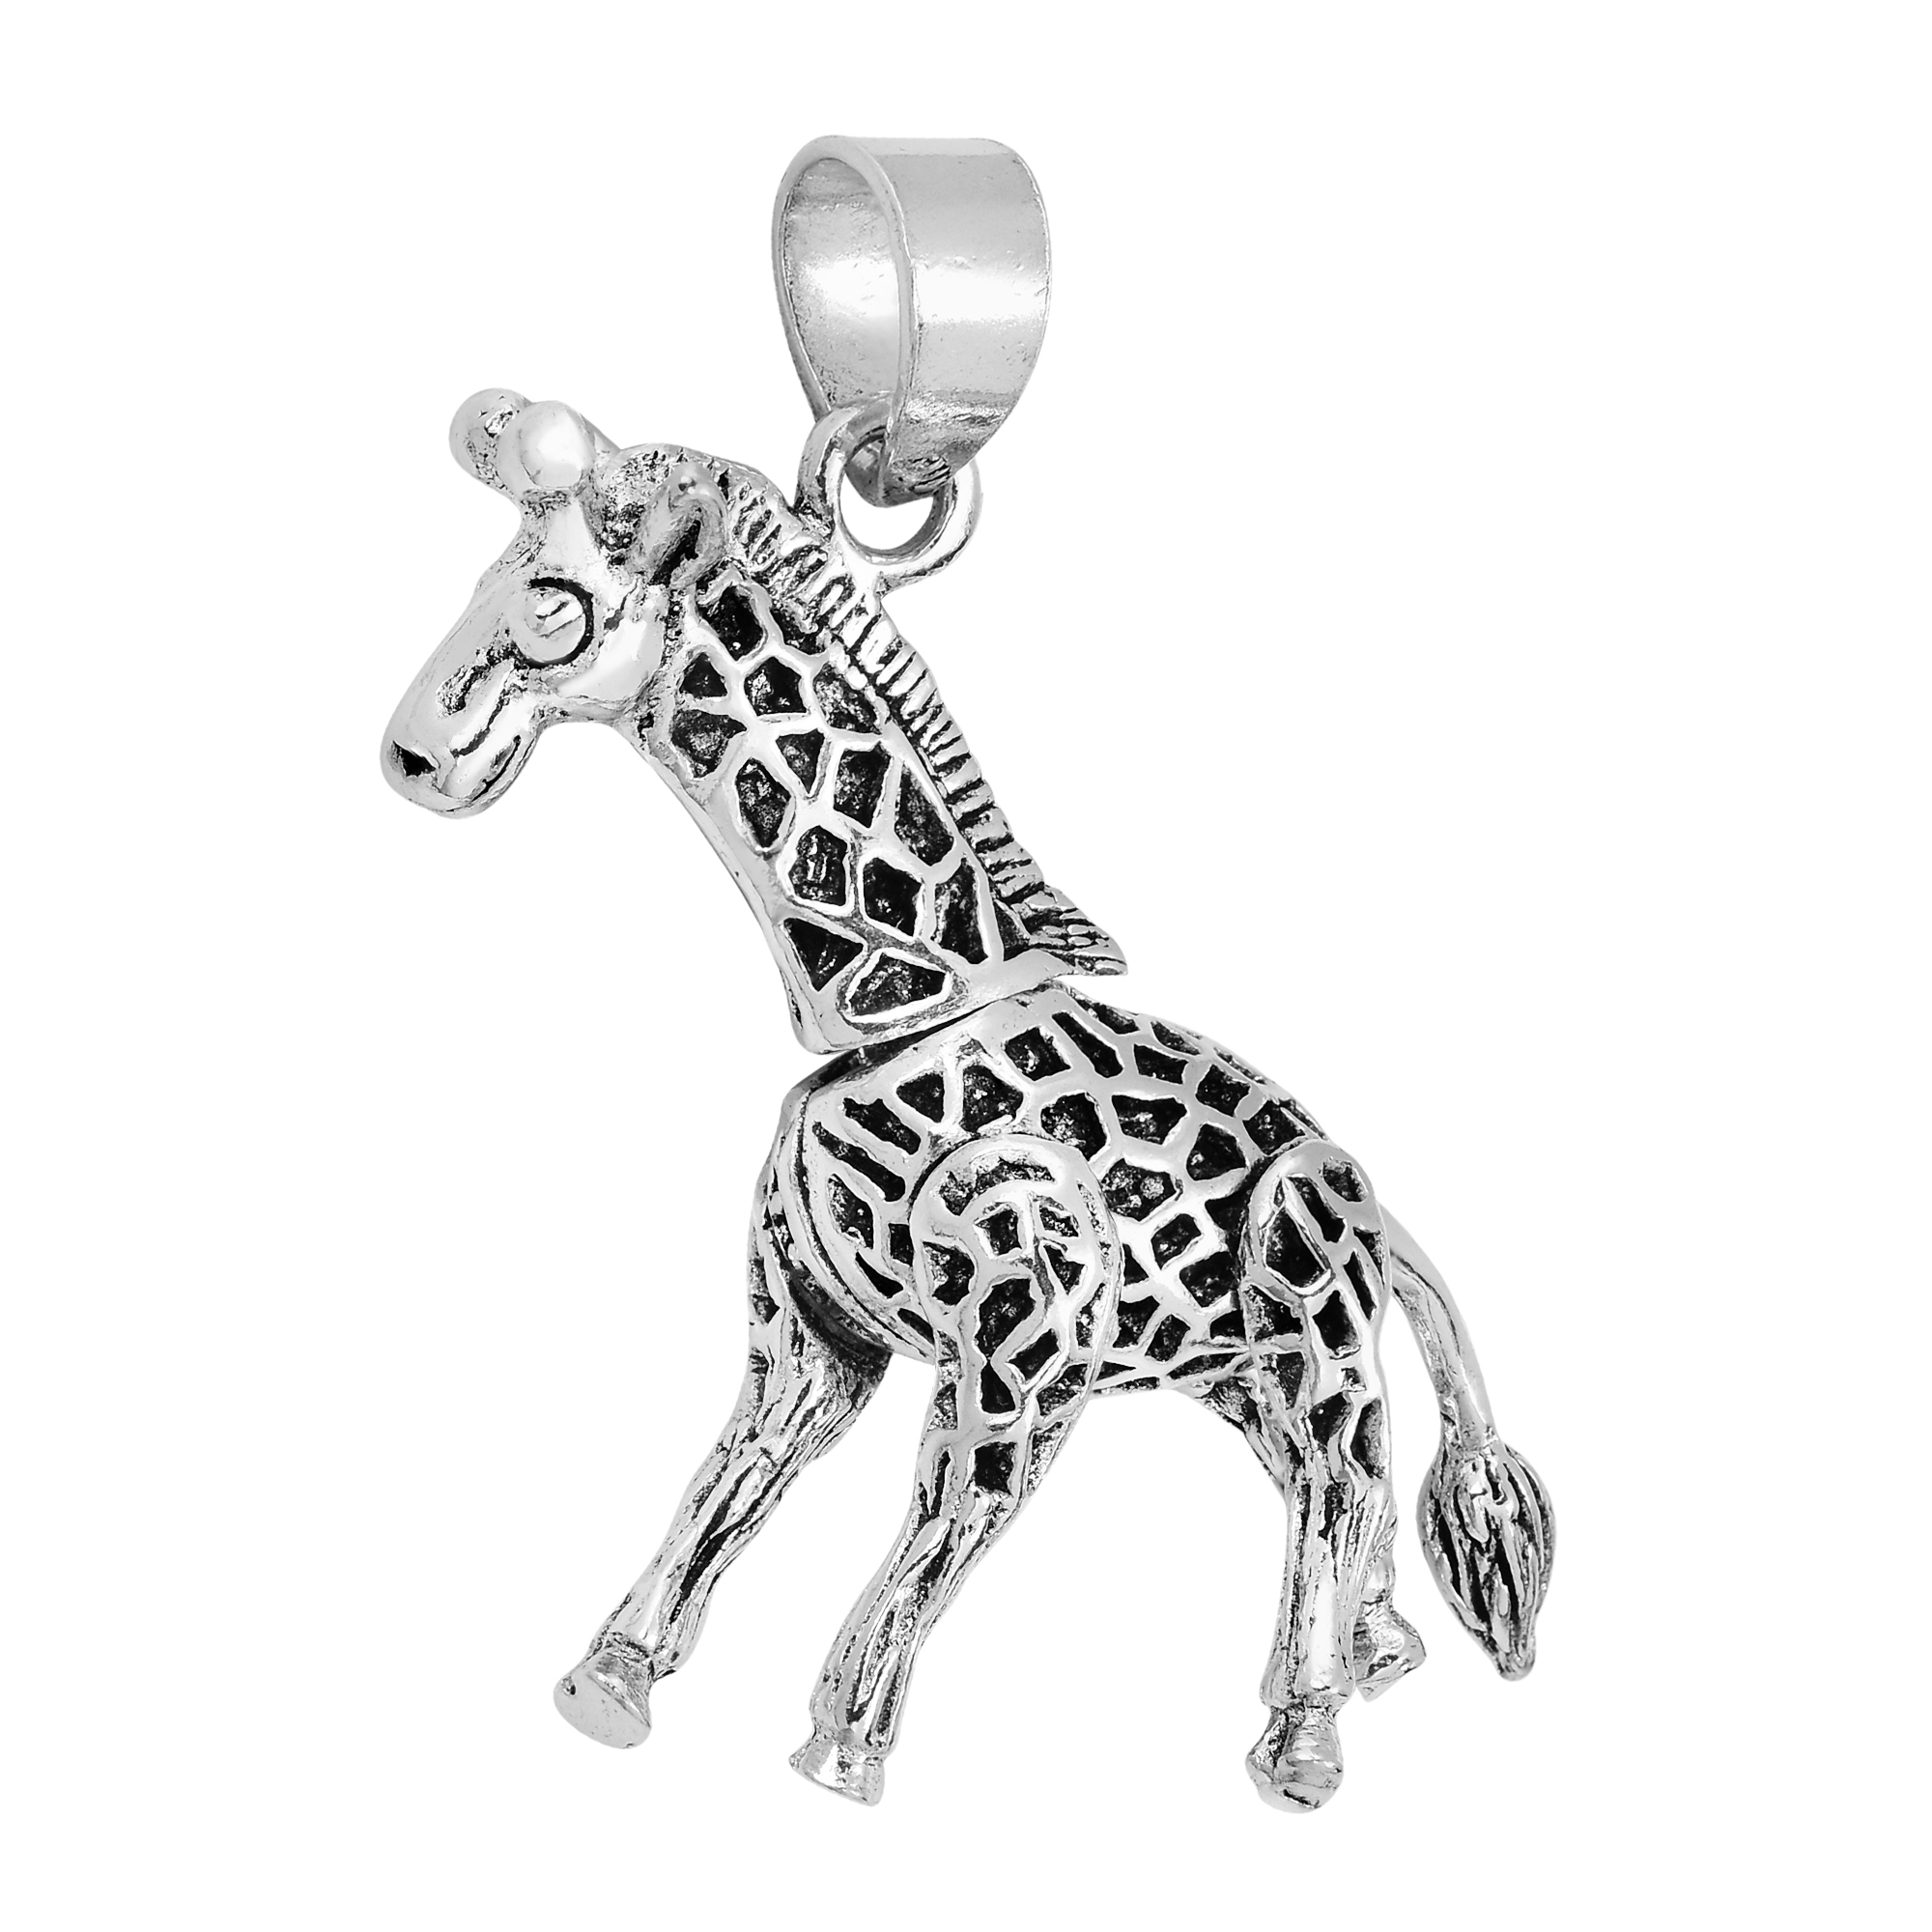 silver watches free diamond product giraffe pendant gold yellow overstock necklace shipping sterling and mom child today tdw jewelry